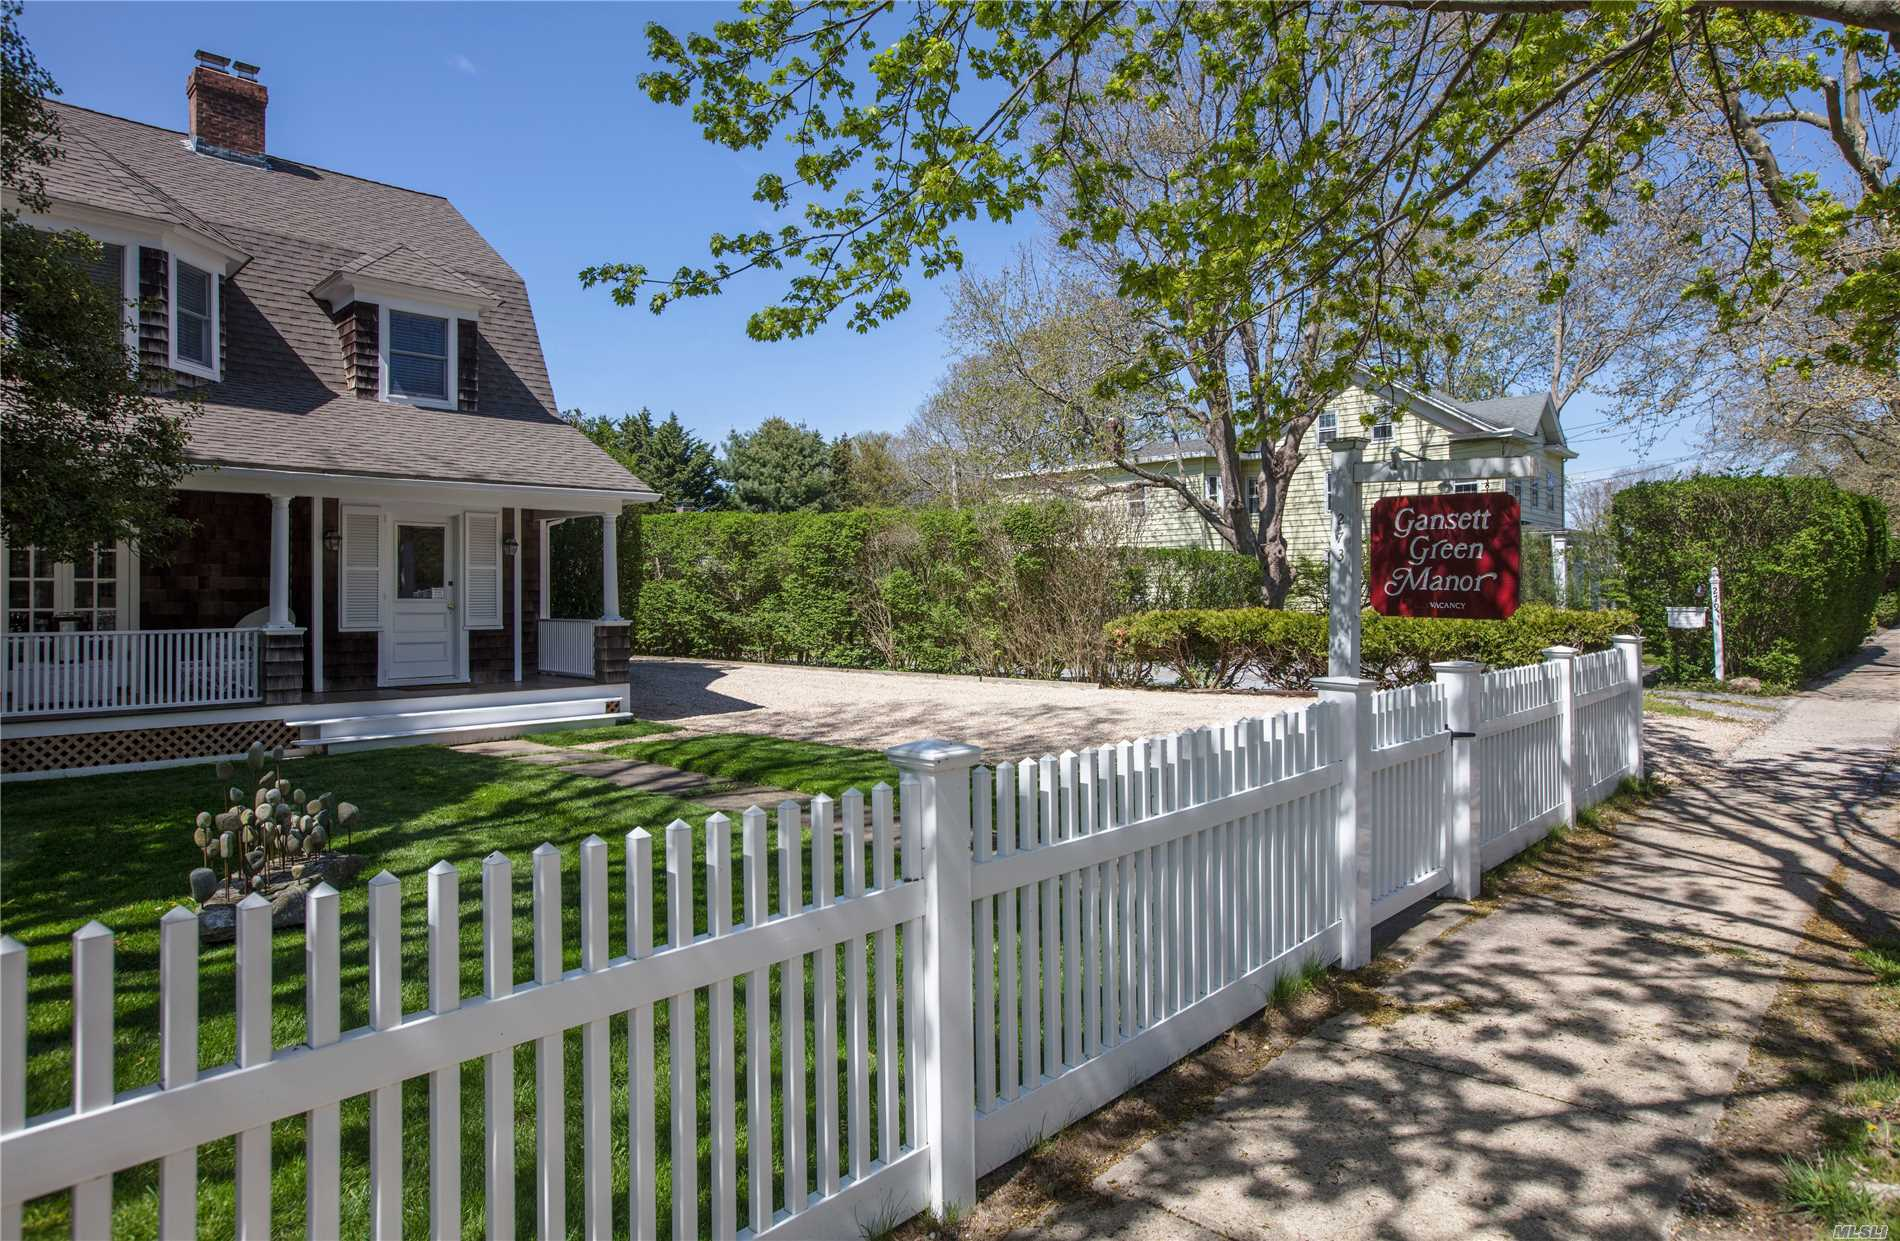 This Beautiful, Iconic Hamptons Retreat Offers Updated Yet Unspoiled Country Elegance In Prestigious Amagansett.Centrally Located Yet Secluded, W/Manicured Grounds & Adjacent Farmland.Fifteen Accommodations, Including A Private Farmhouse.This Popular & Profitable Inn And Wedding Venue Is A Perfect Investment, With Room To Expand.Walk To Cafes & Shops, Close To Ocean Beaches.